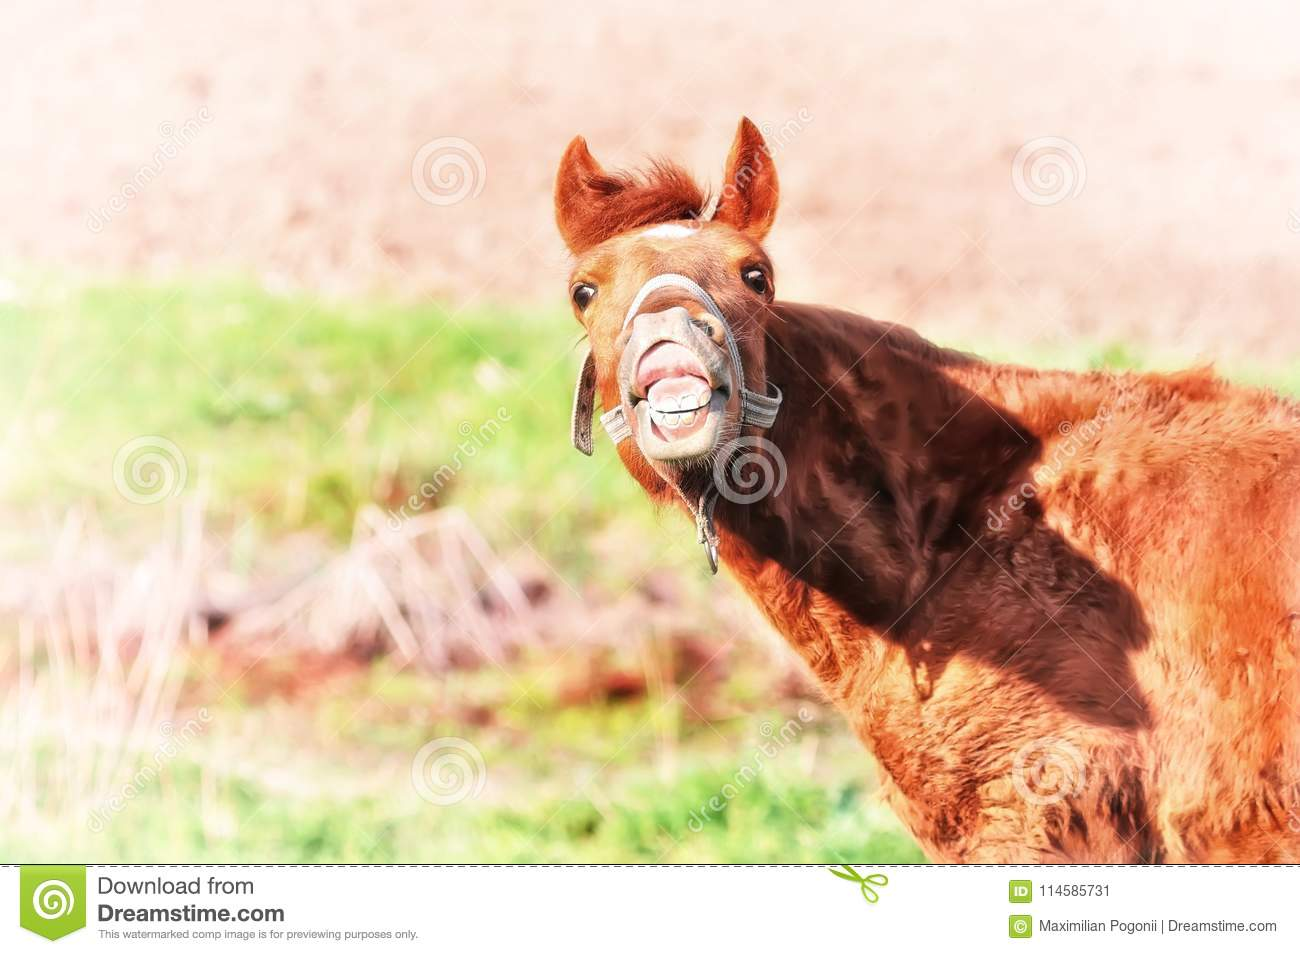 Crazy Horse Funny Face Laughs Stock Image Image Of Herbivore Horse 114585731